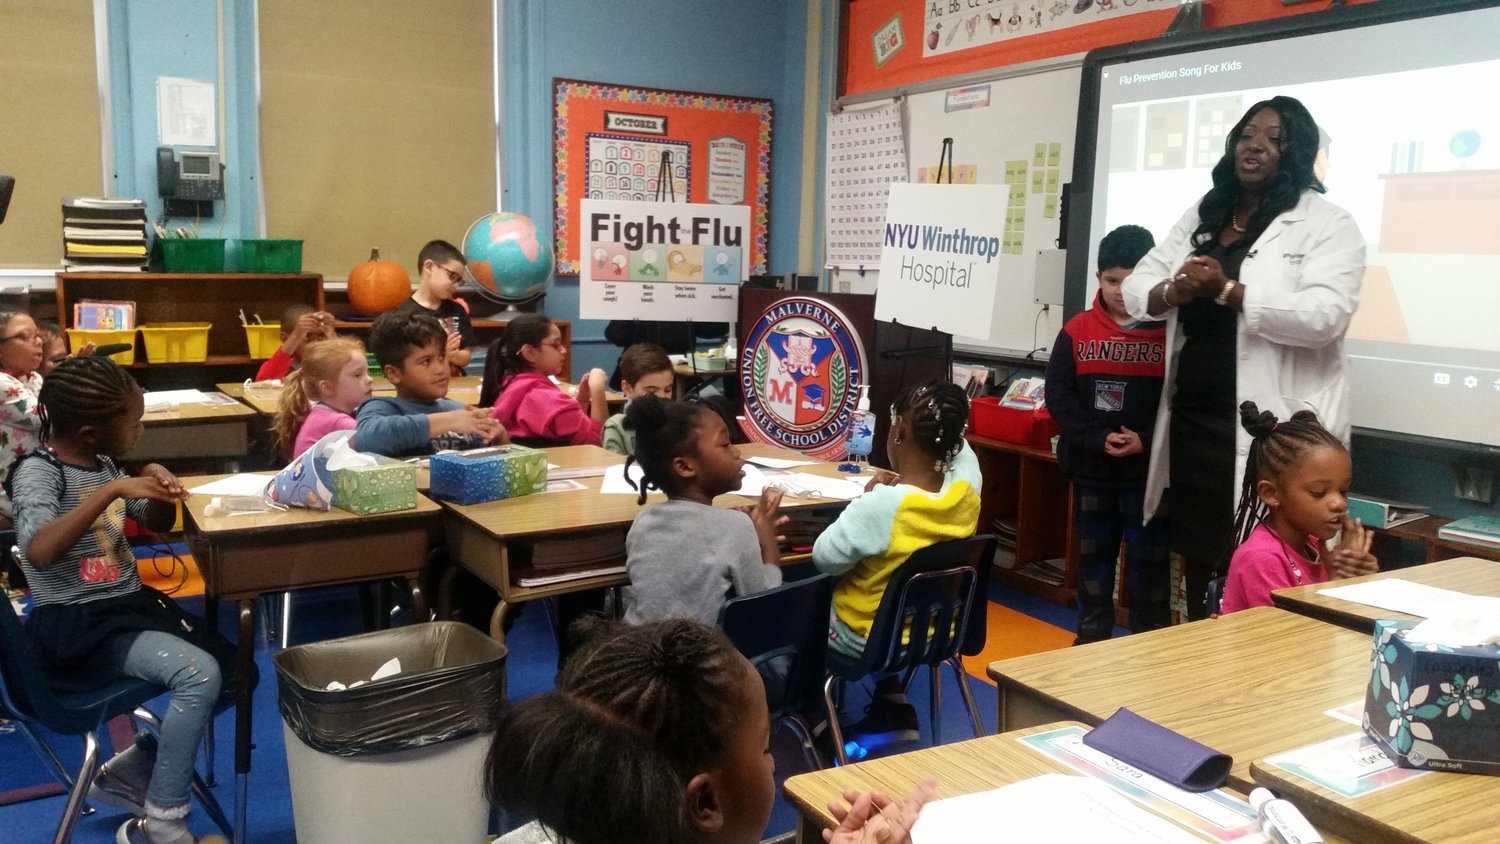 Dr. Ranekka Dean, director of infection prevention at NYU Winthrop Hospital, met with students at Maurice W. Downing Primary School on Oct. 25 to discuss flu prevention.